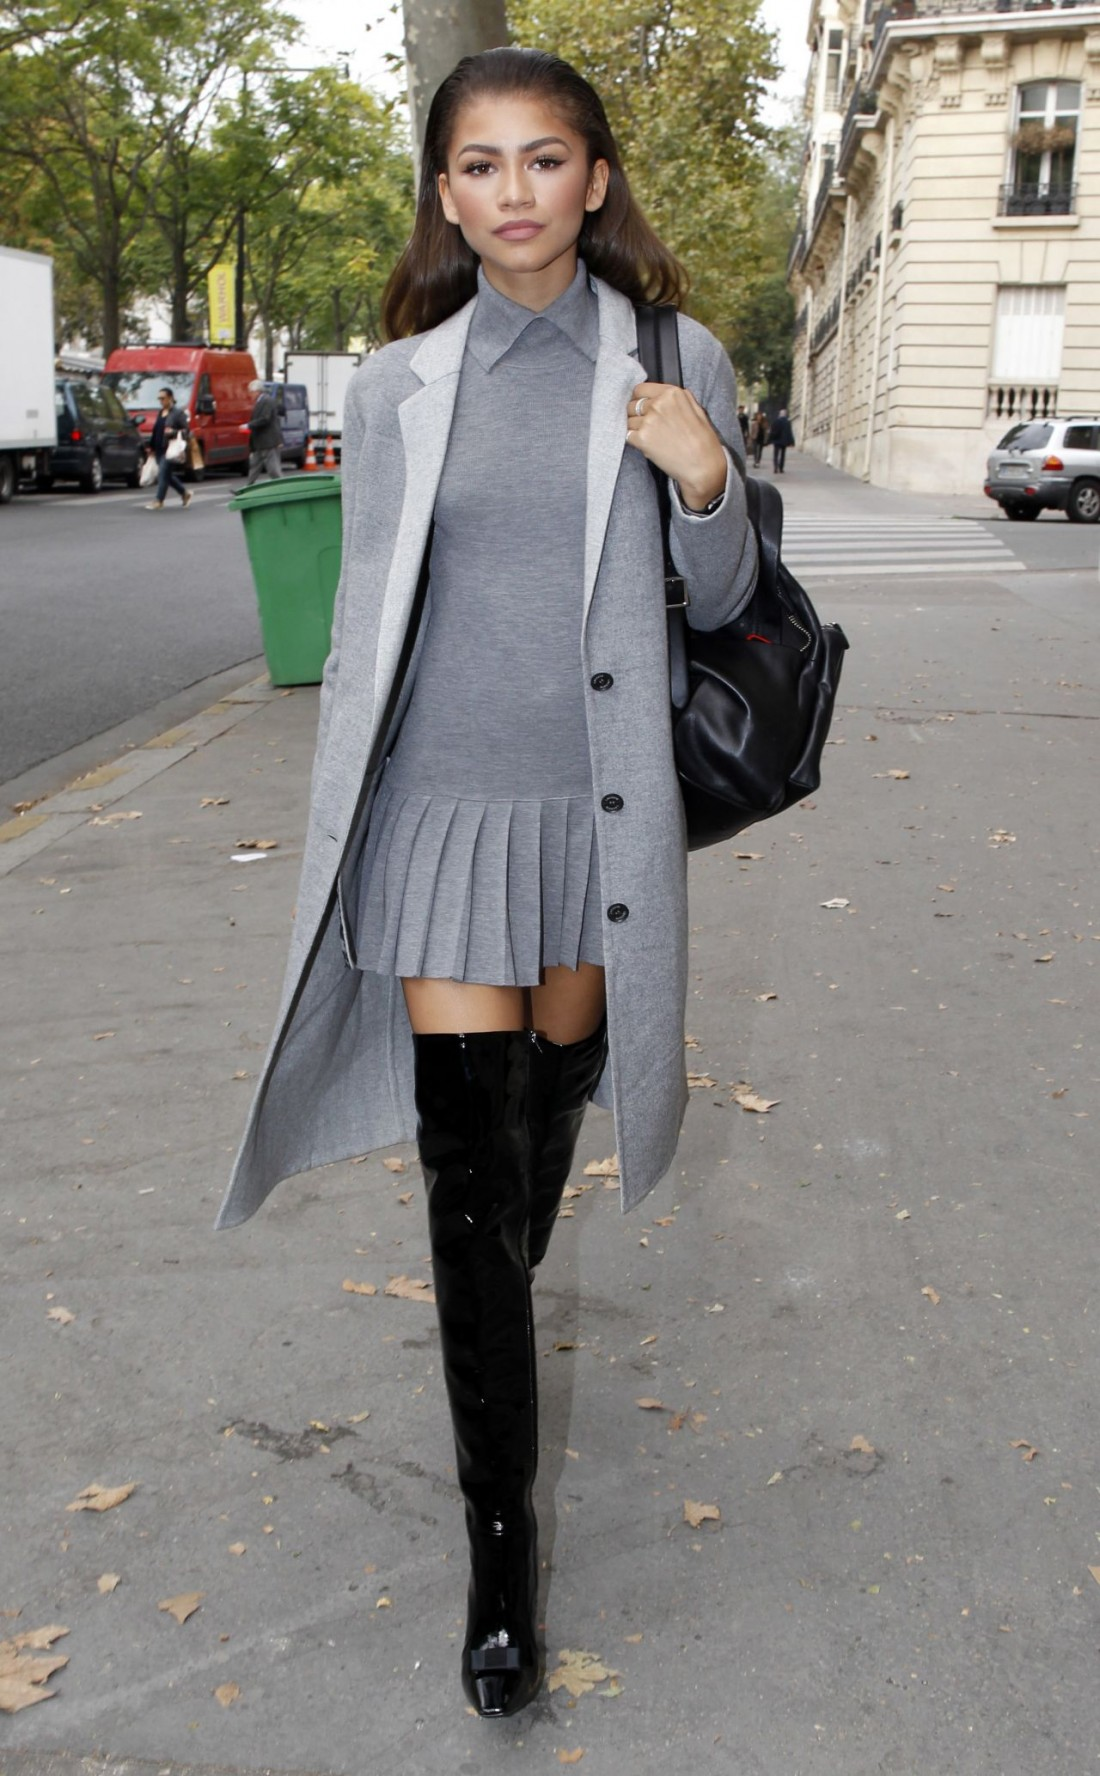 Zendaya out in paris fashion sizzle Fashion style october 2015